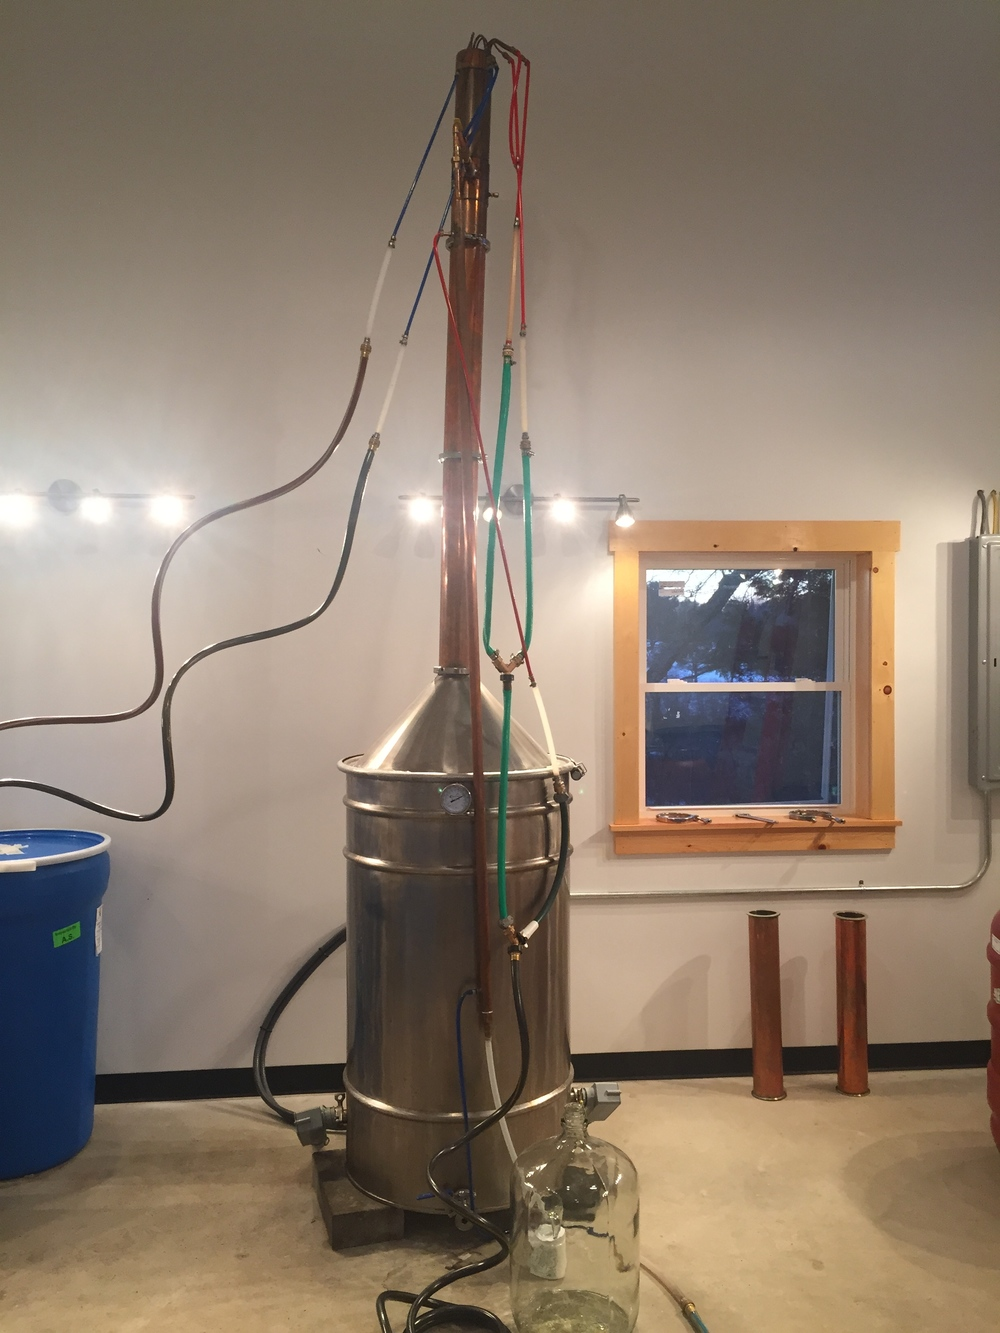 100 gallon, artisanal still.